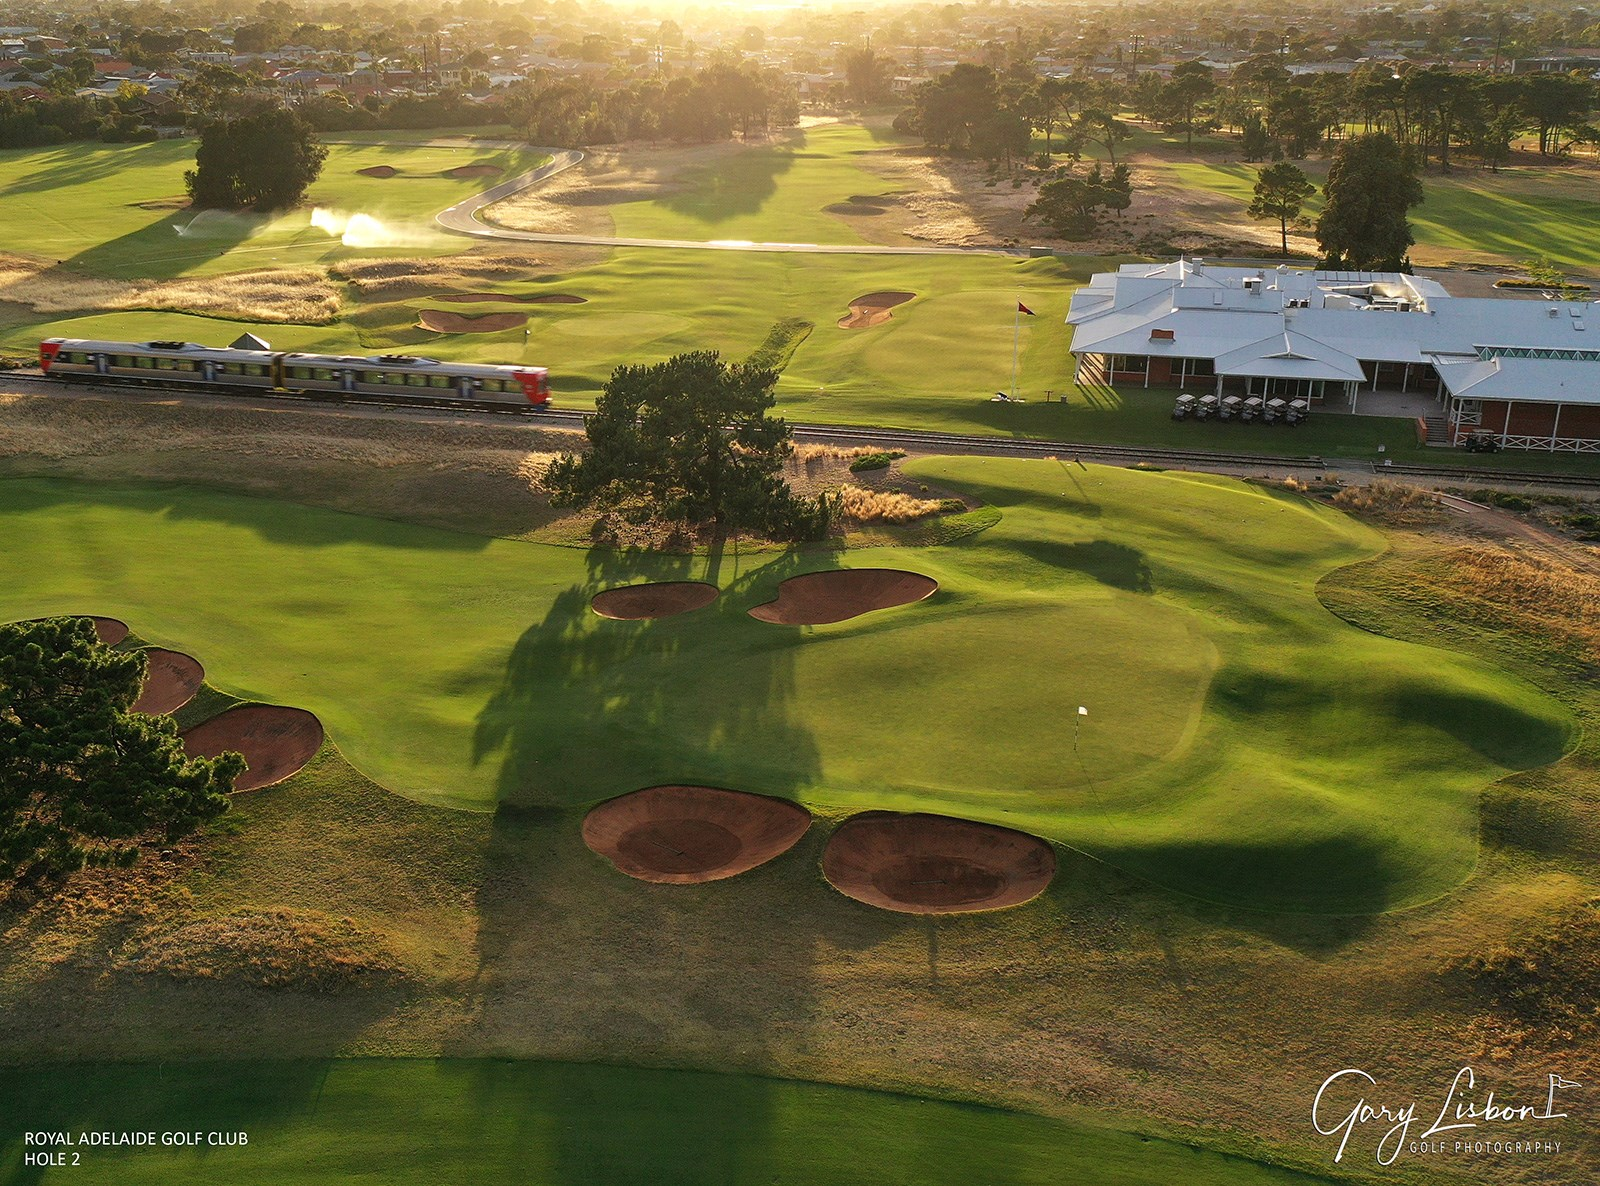 Royal Adelaide Golf Club Hole 2